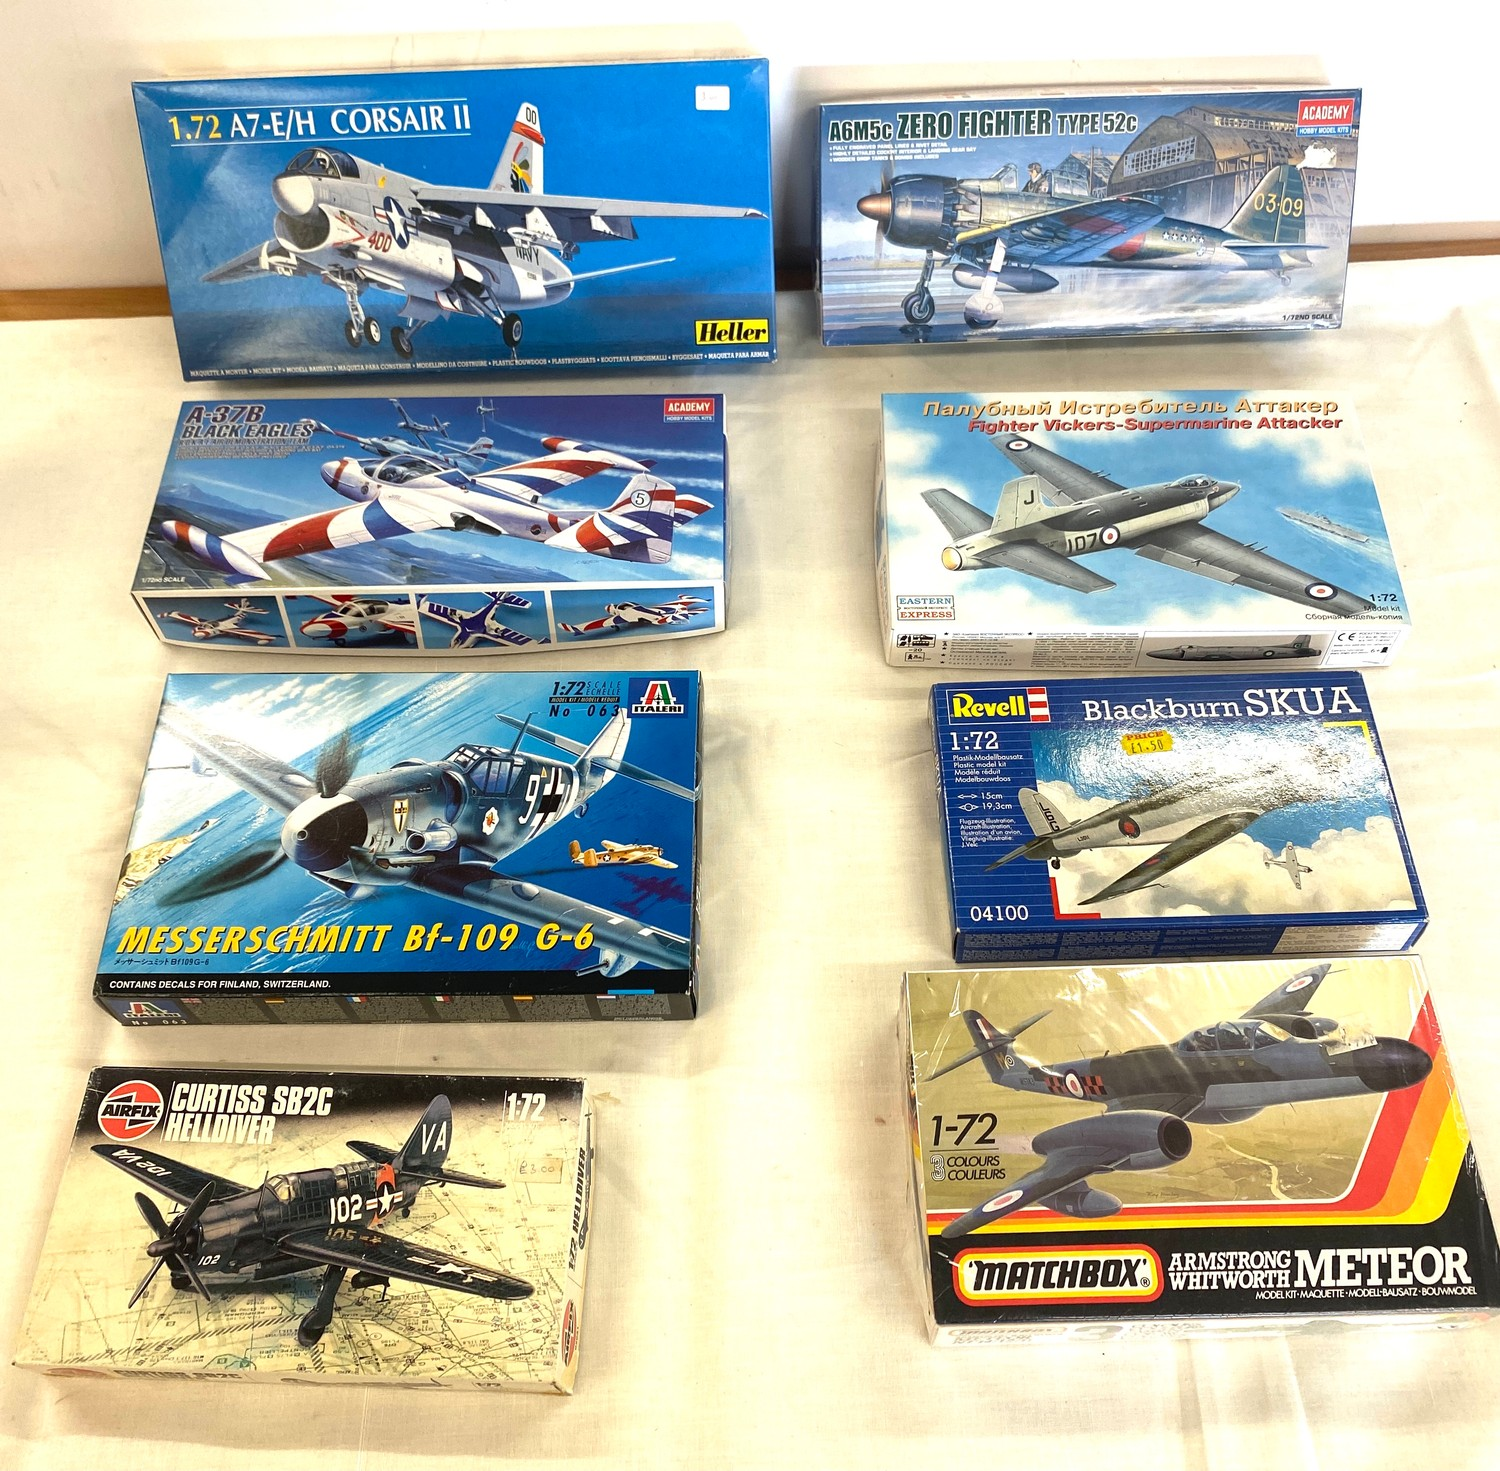 Selection of 8 boxed craft models to include, Corsaur II A7, Zero fighter type 52c, Fighter vickers,